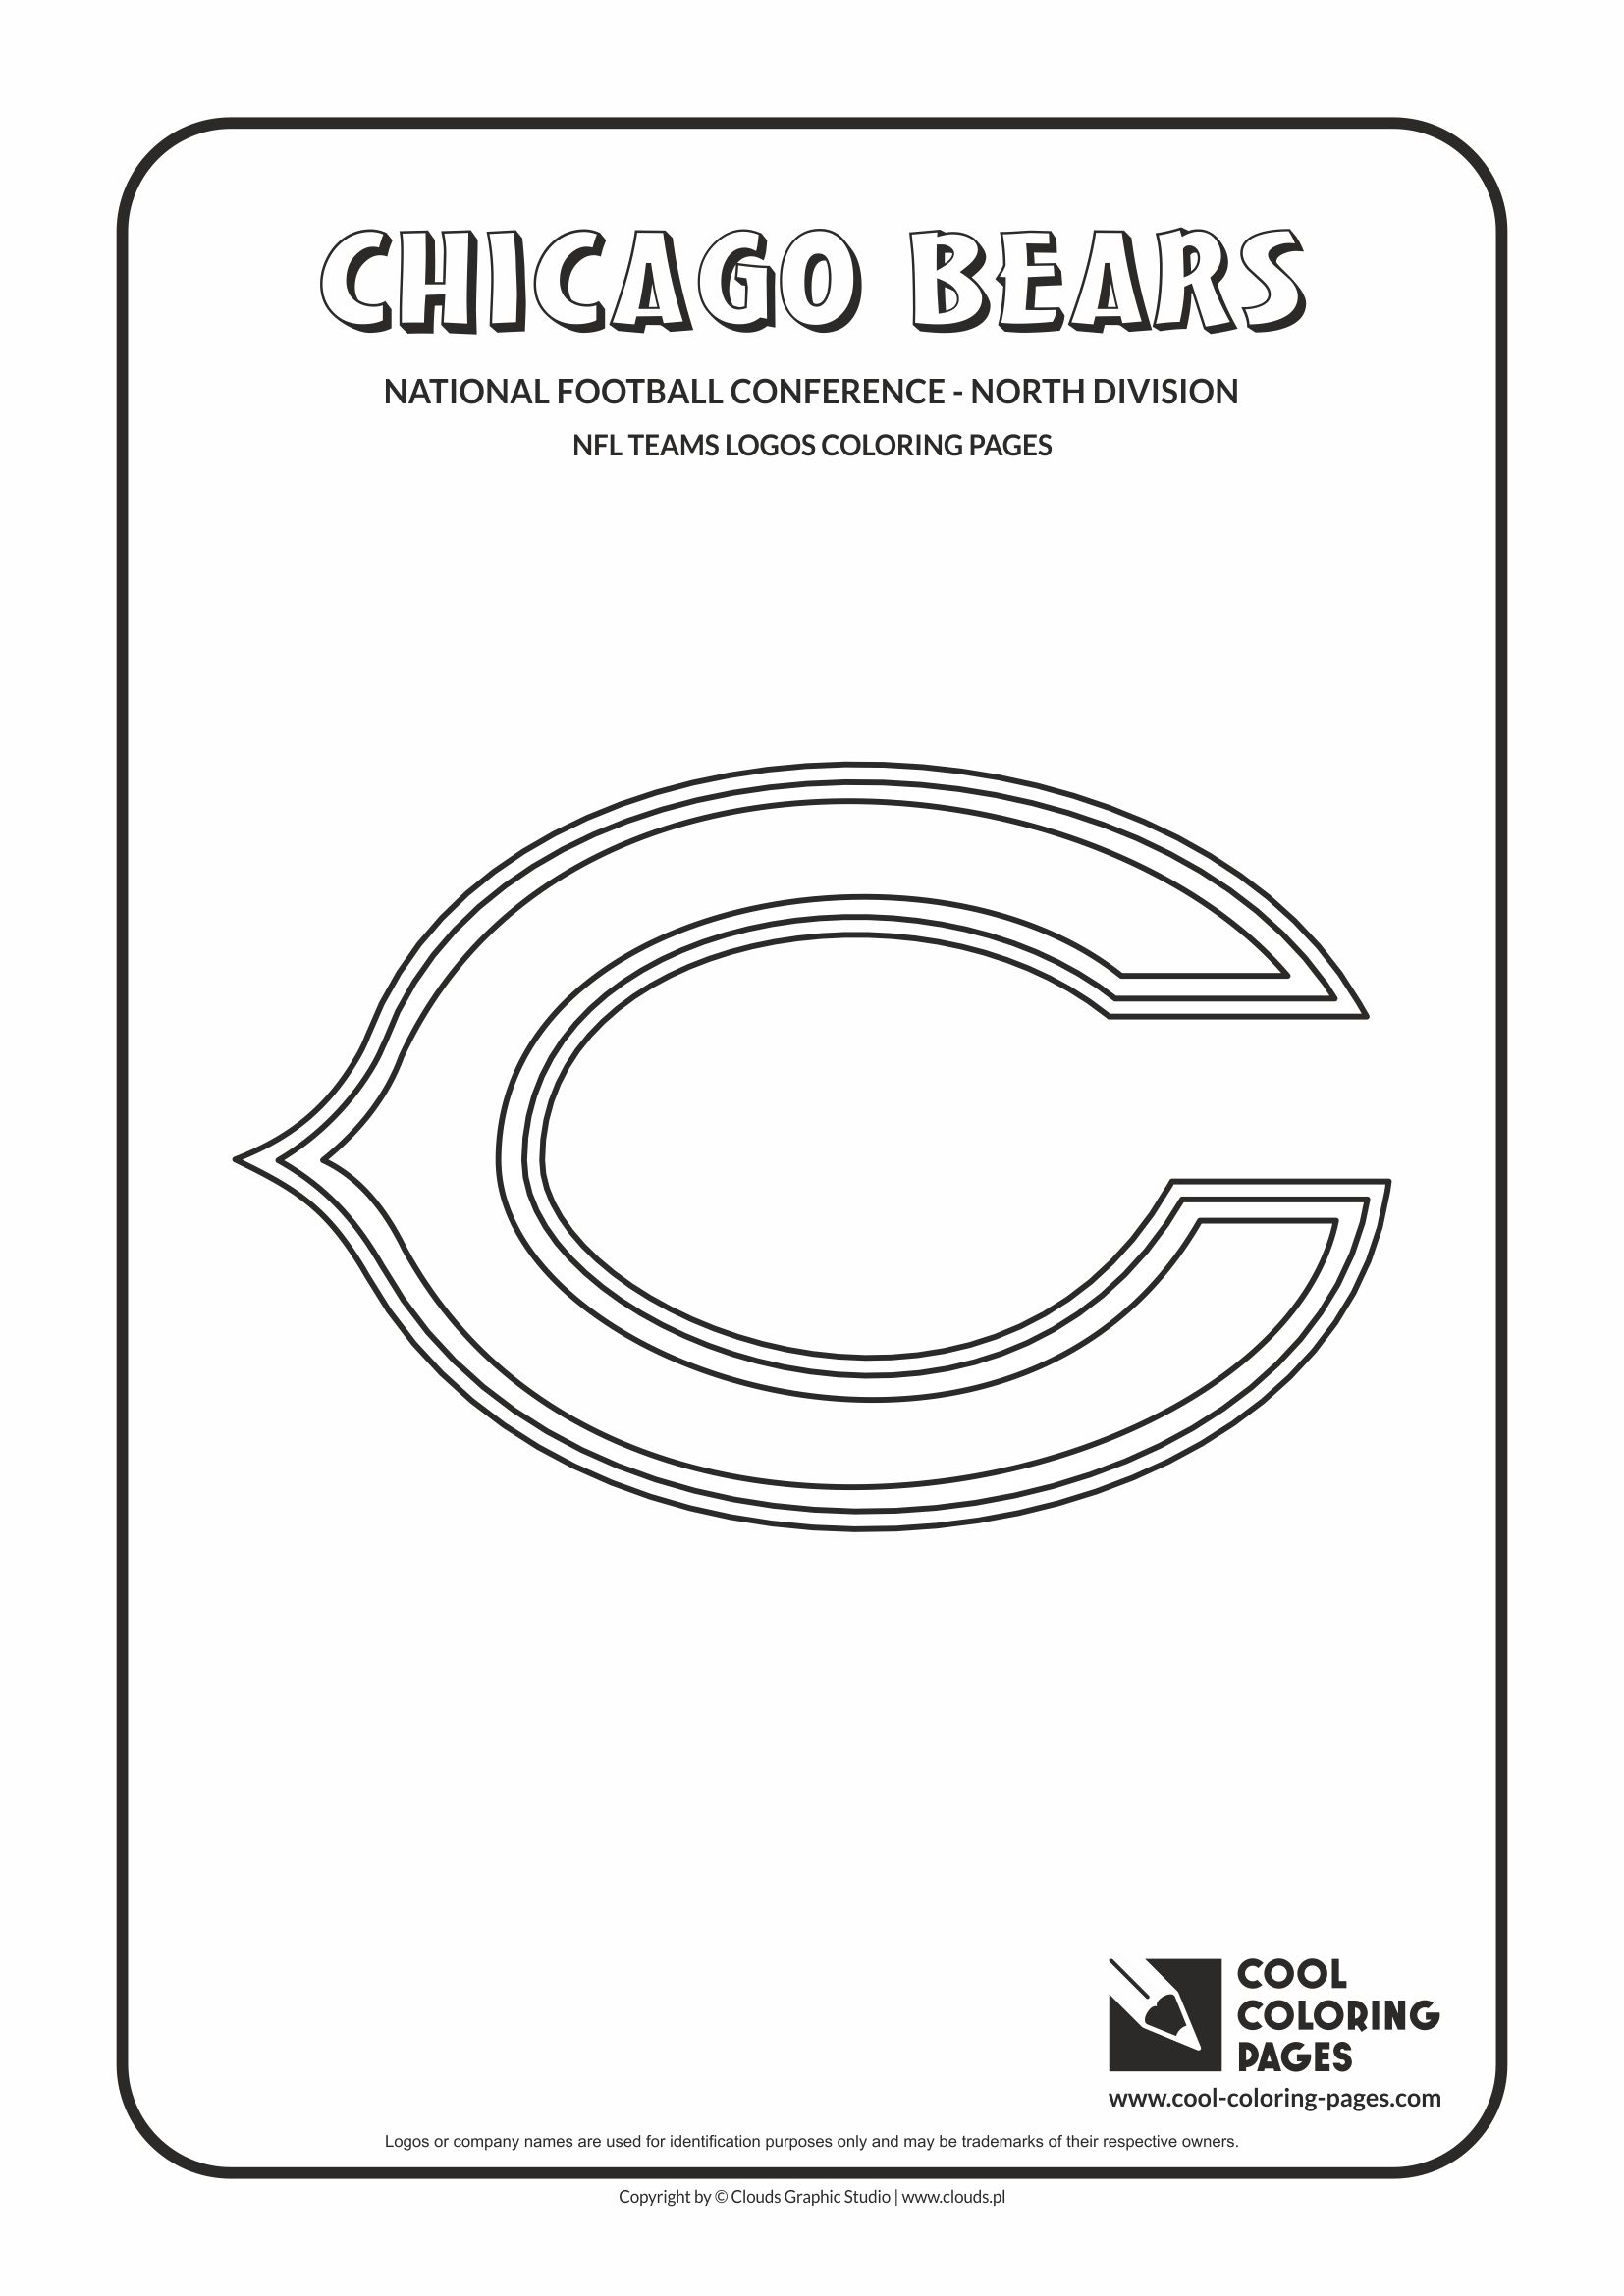 Cool Coloring Pages - NFL American Football Clubs Logos - National Football Conference - North Division / Chicago Bears logo / Coloring page with Chicago Bears logo